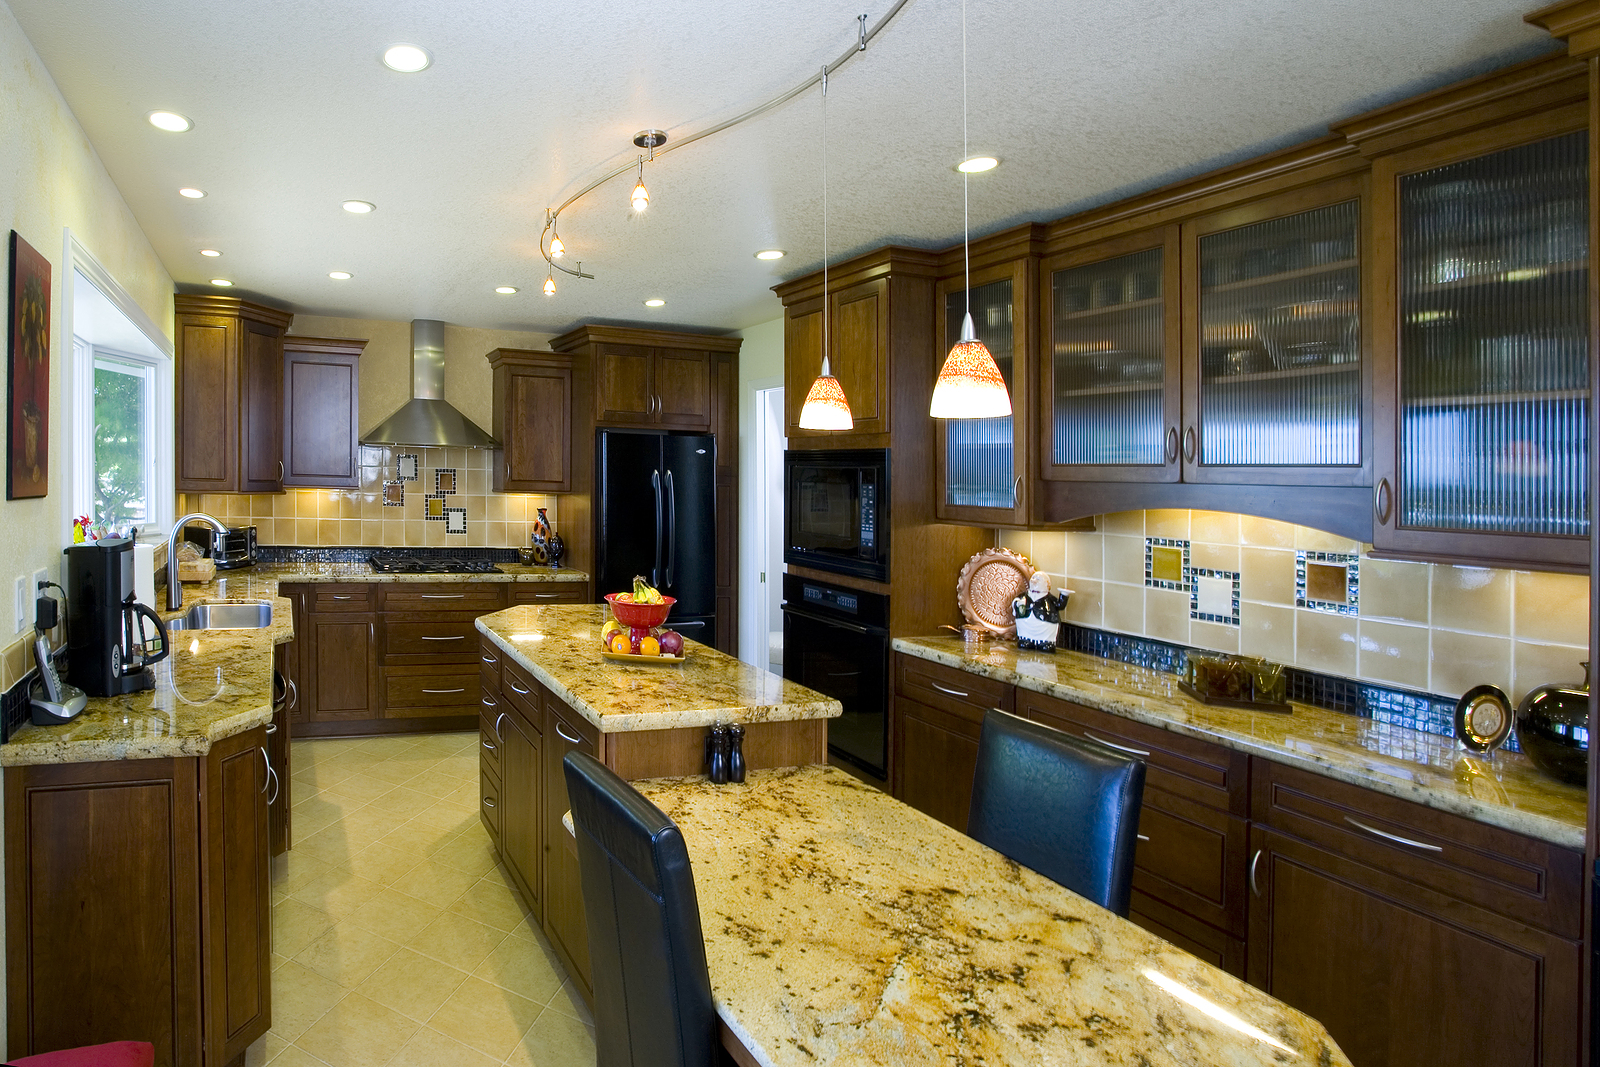 American woodmark kitchen cabinet reviews online ask home design